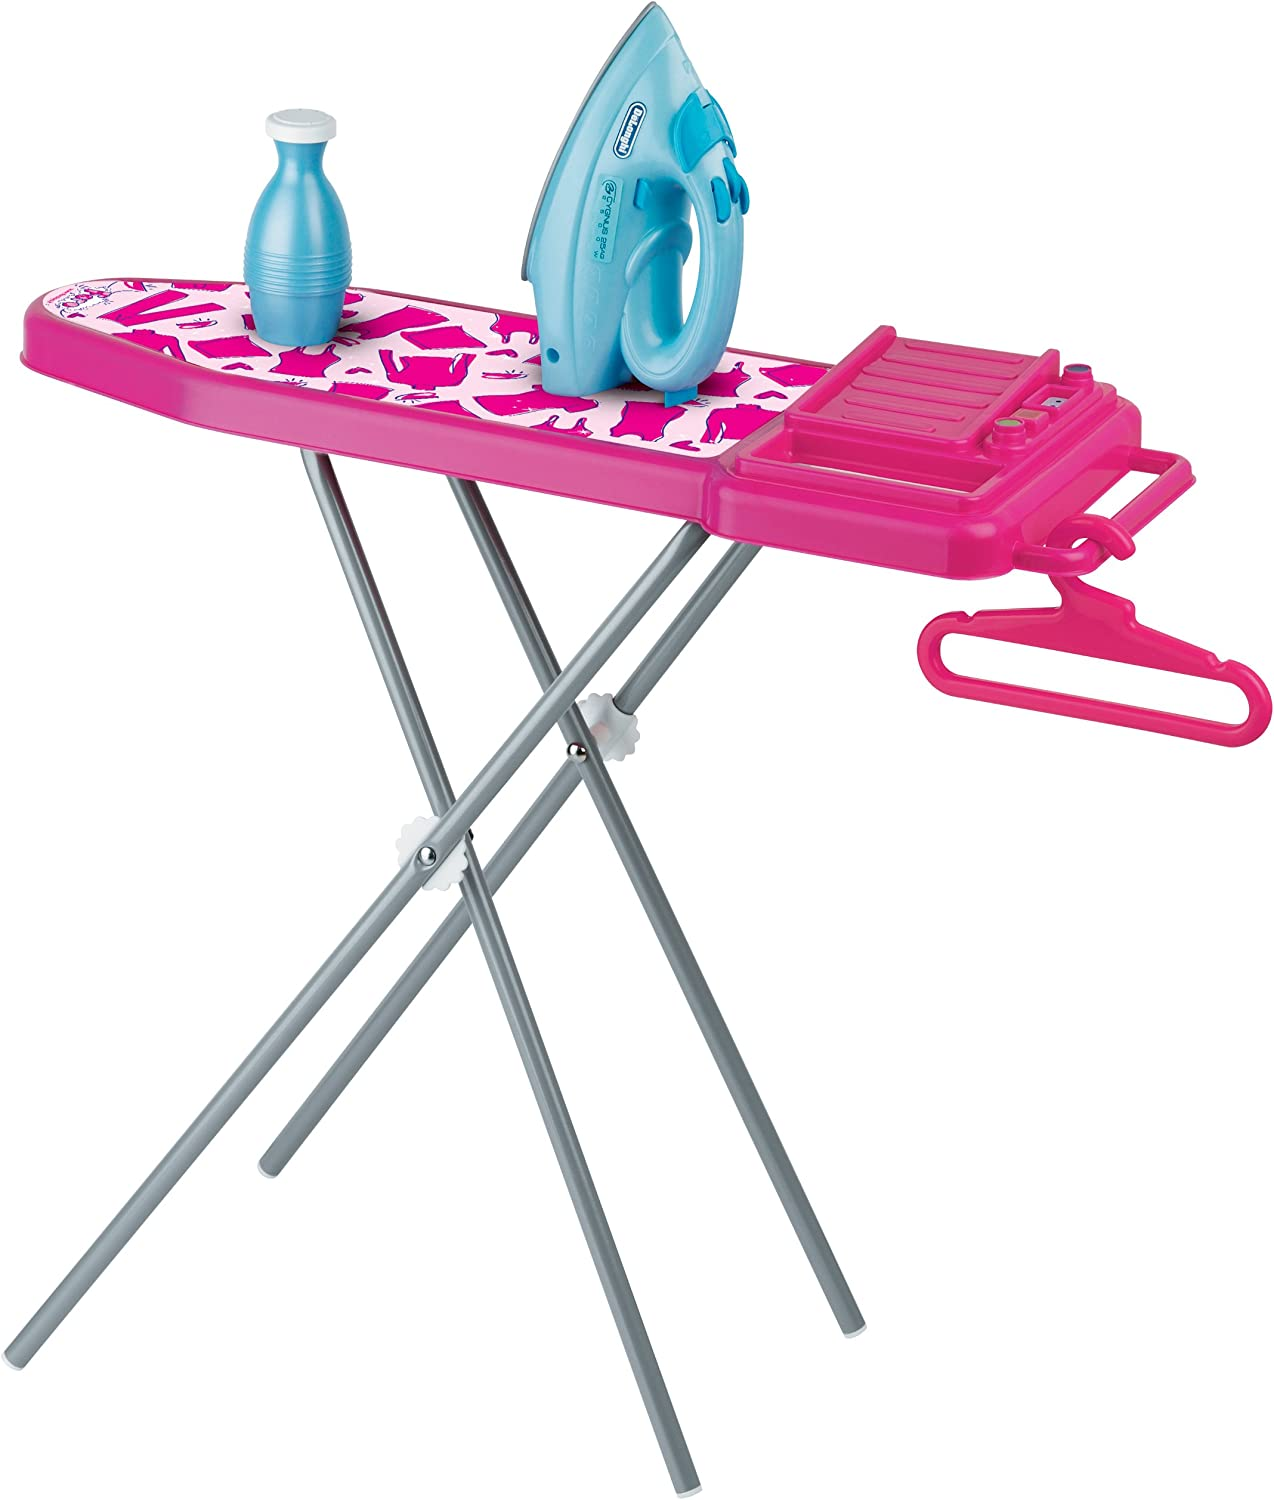 Faro Delonghi Toy Metal Ironing Board with Iron and Accessories